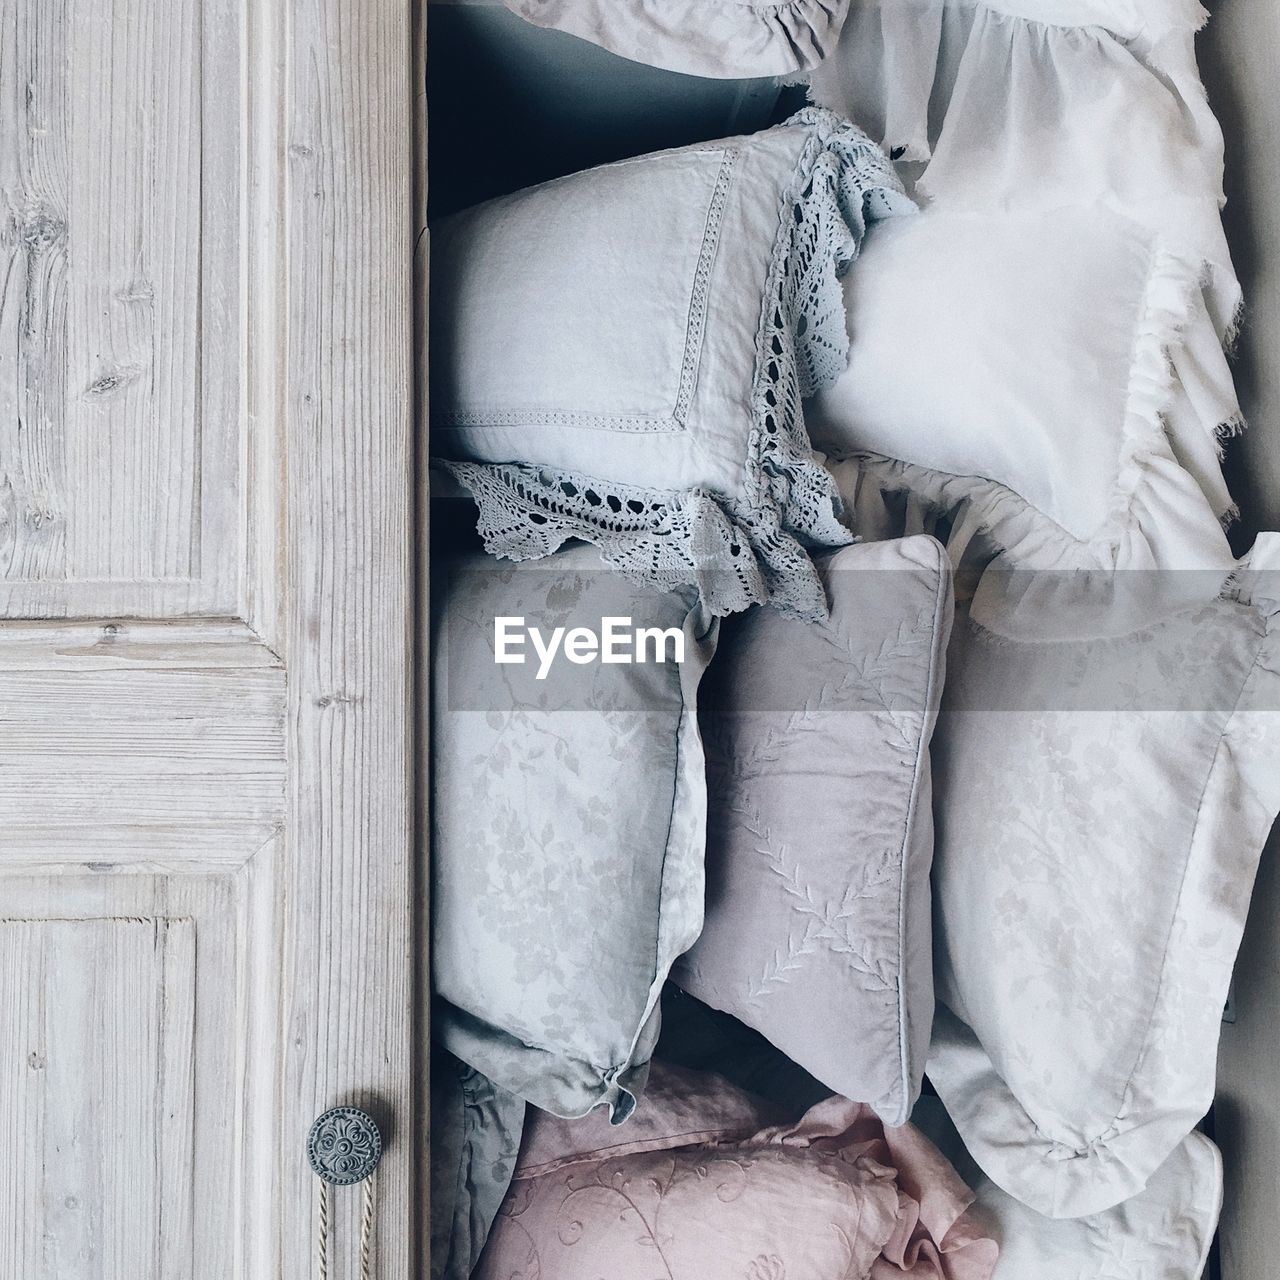 furniture, indoors, textile, no people, white color, high angle view, wood - material, clothing, close-up, pillow, still life, bed, fashion, directly above, day, collection, body part, jeans